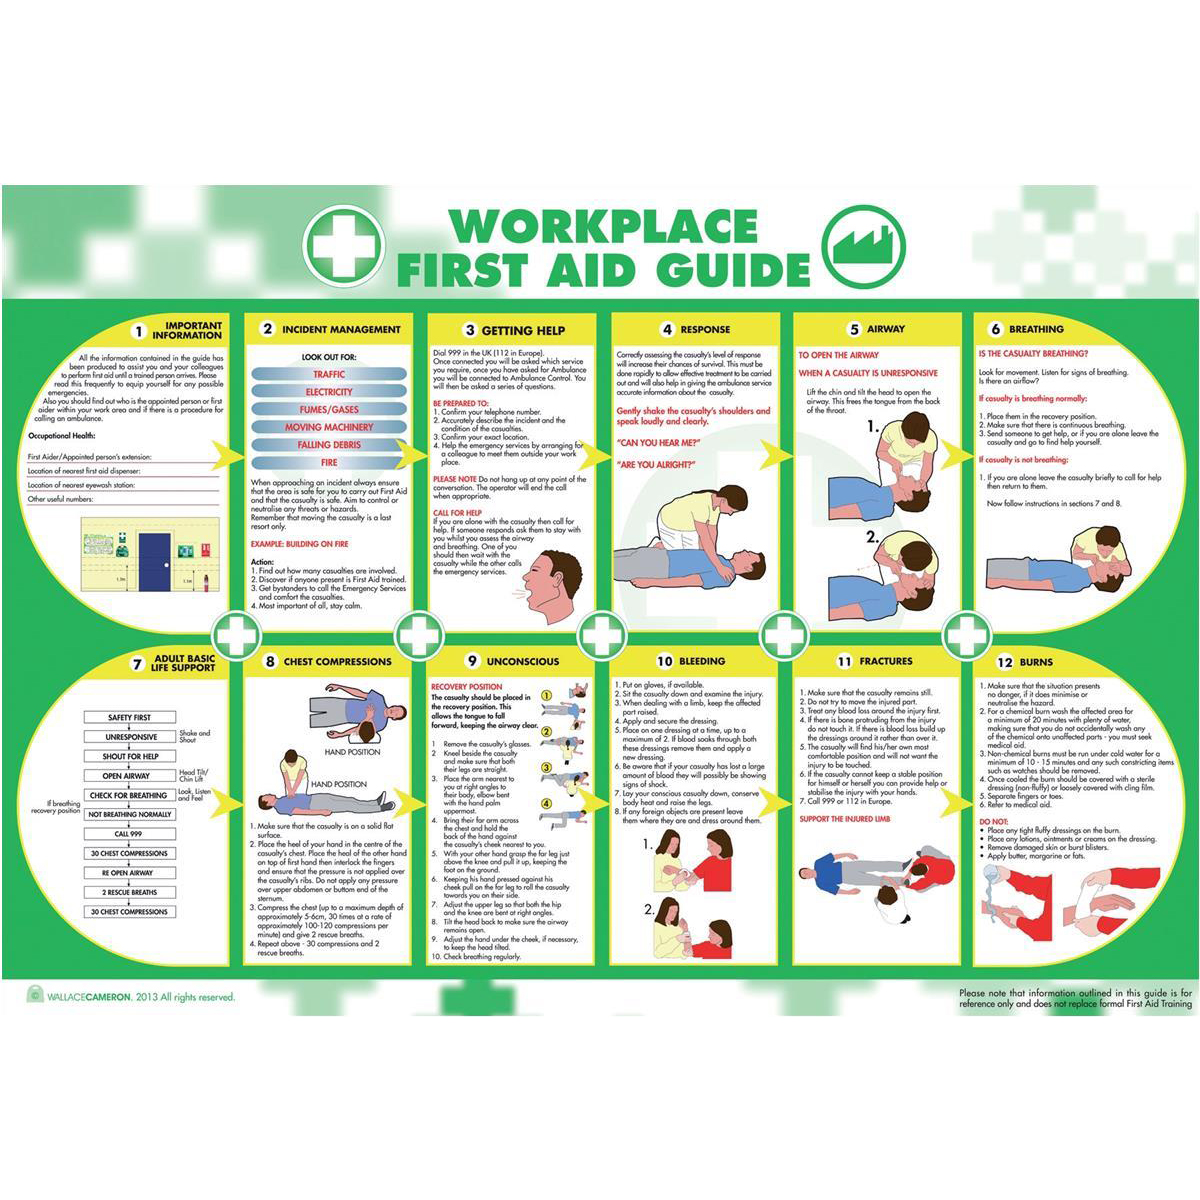 Signs Wallace Cameron Workplace First-Aid Guide Poster Laminated Wall-mountable W840xH590mm Ref 5405025